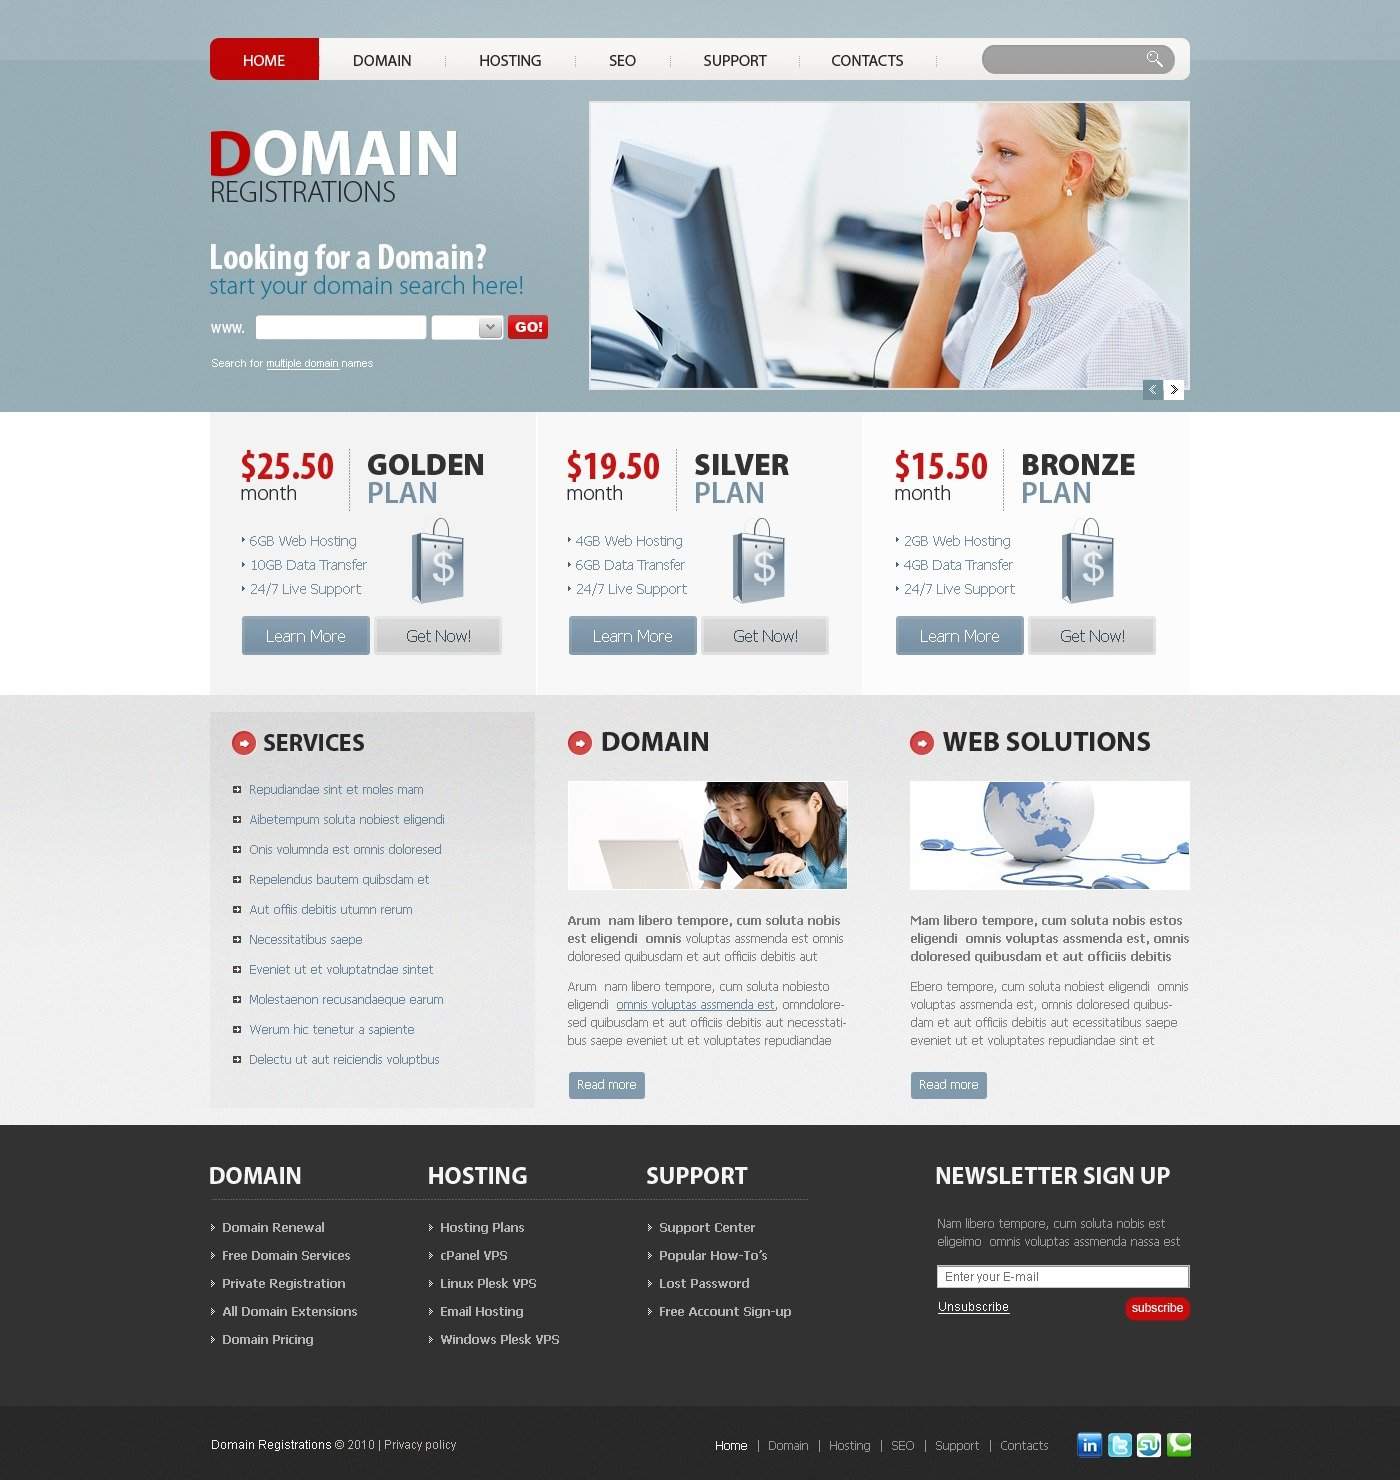 The Domain Name PSD Design 54240, one of the best PSD templates of its kind (internet, hosting, flash 8, wide), also known as domain name PSD template, registration PSD template, Internet website PSD template, hosting PSD template, e-mail PSD template, transfer PSD template, services PSD template, spam PSD template, filtering PSD template, transaction PSD template, report PSD template, site PSD template, builder solution PSD template, server PSD template, monitoring PSD template, management PSD template, account PSD template, activation PSD template, client PSD template, technology PSD template, data center provider PSD template, traffic PSD template, processor PSD template, space system and related with domain name, registration, Internet website, hosting, e-mail, transfer, services, spam, filtering, transaction, report, site, builder solution, server, monitoring, management, account, activation, client, technology, data center provider, traffic, processor, space system, etc.